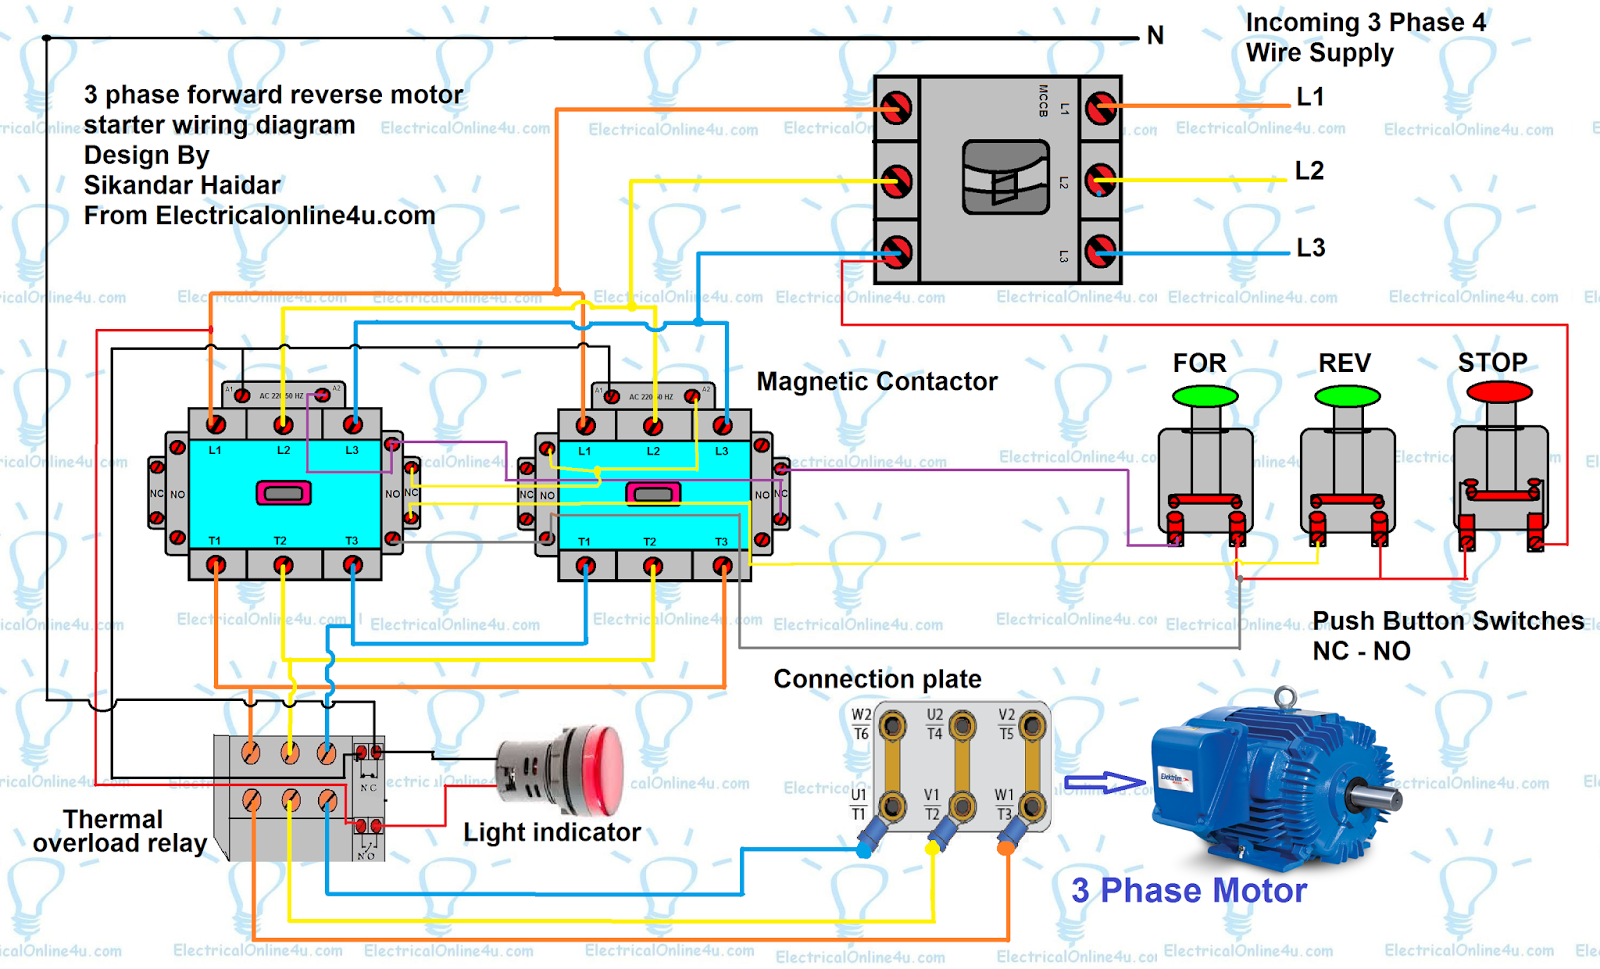 hight resolution of forward reverse motor control diagram for 3 phase motor electrical how to wire a double pole circuit breaker electrical online 4u